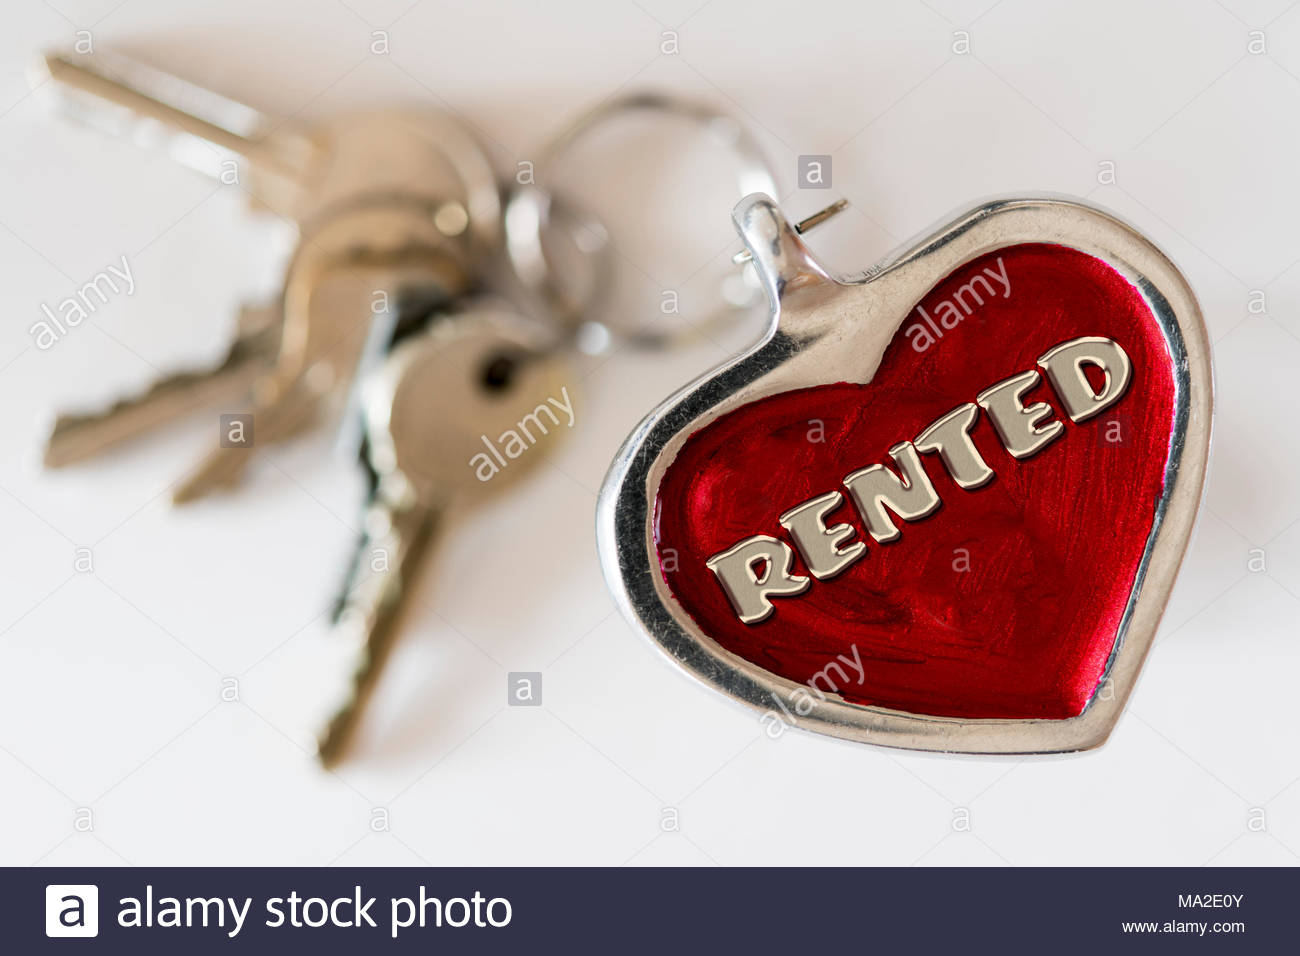 Rented written on a key ring fob, UK - Stock Image